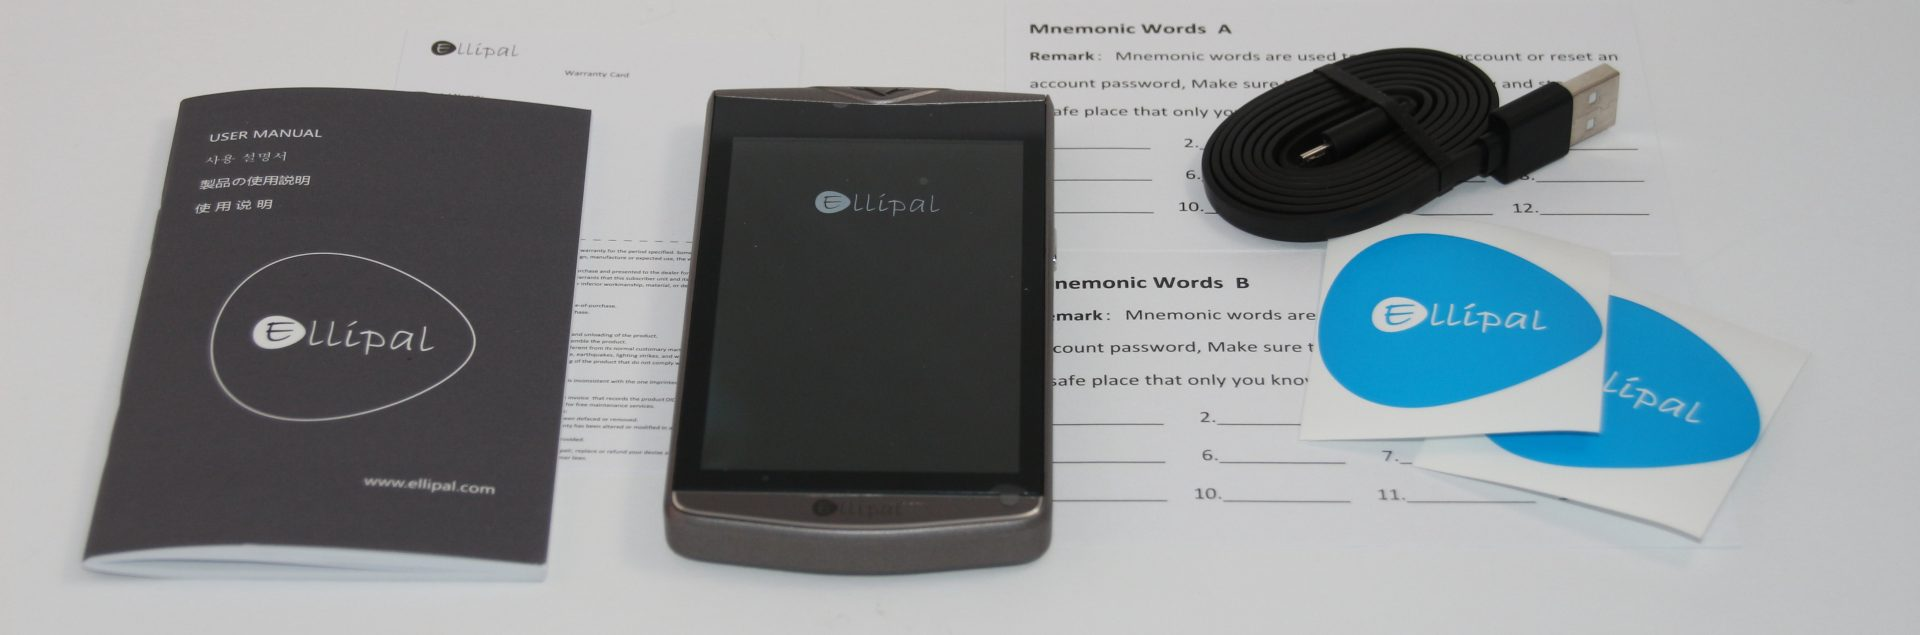 e ellipal cryptocurrency hardware wallet